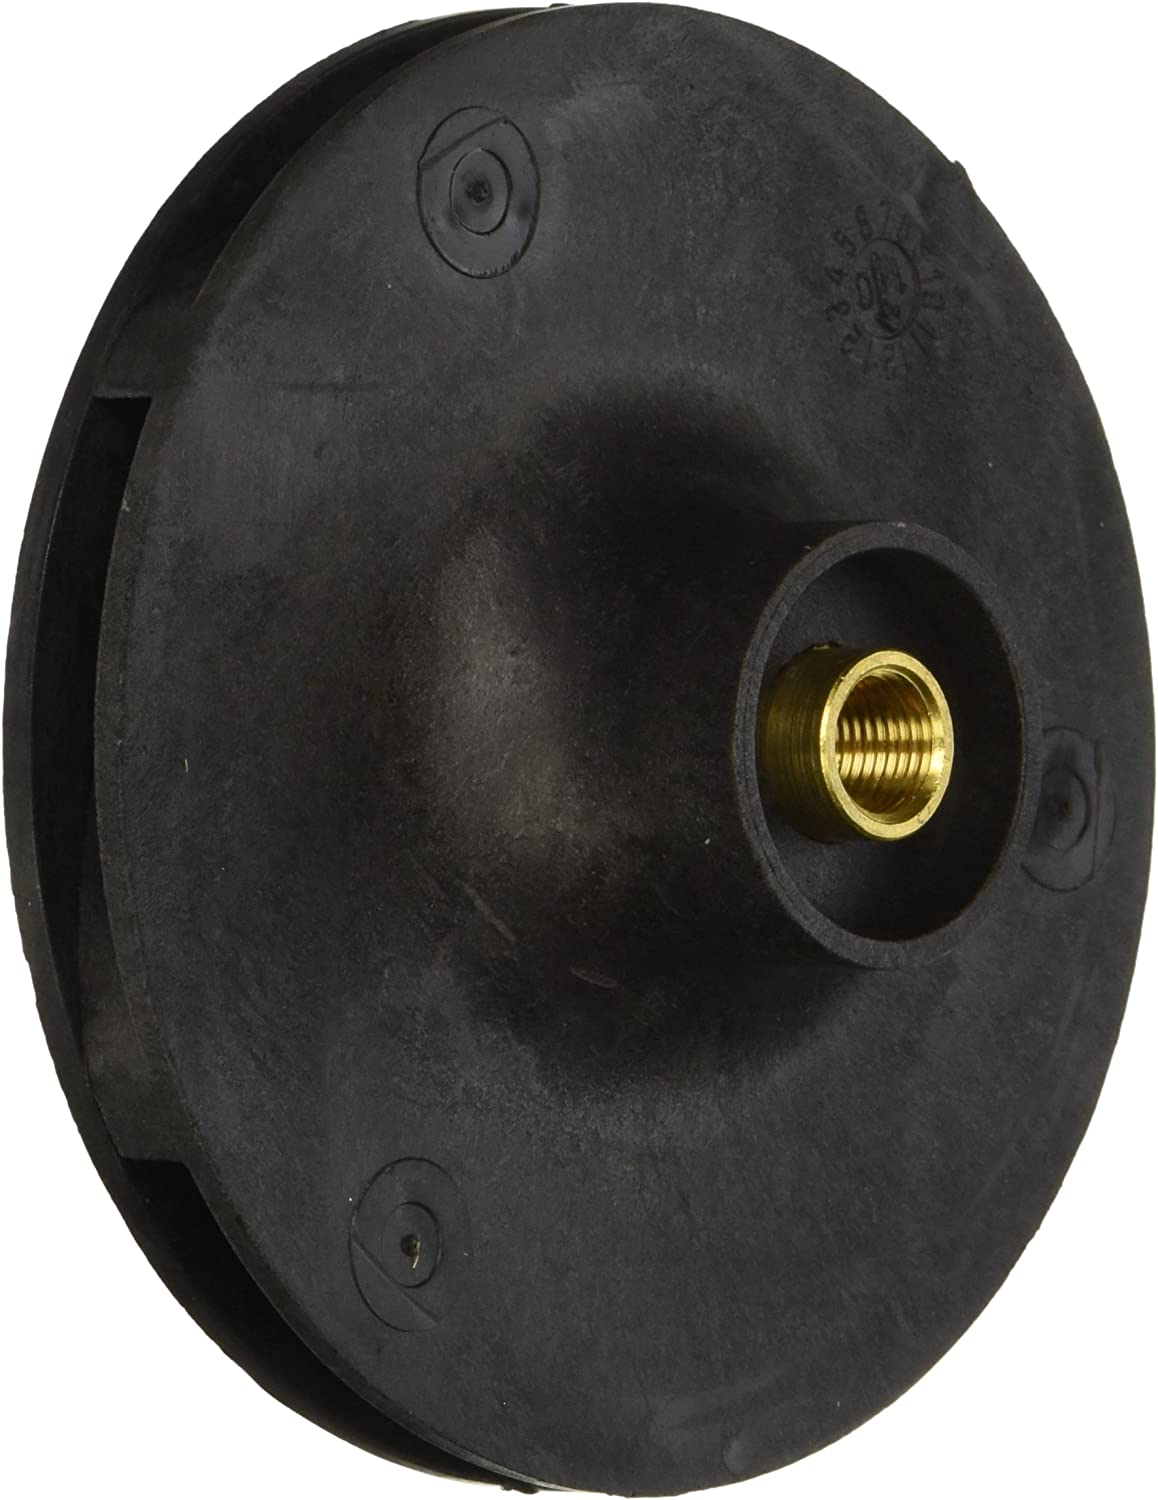 Pentair 073129 Impeller Replacement WhisperFlo 1000 Series Inground Pool and Spa Pump,Black